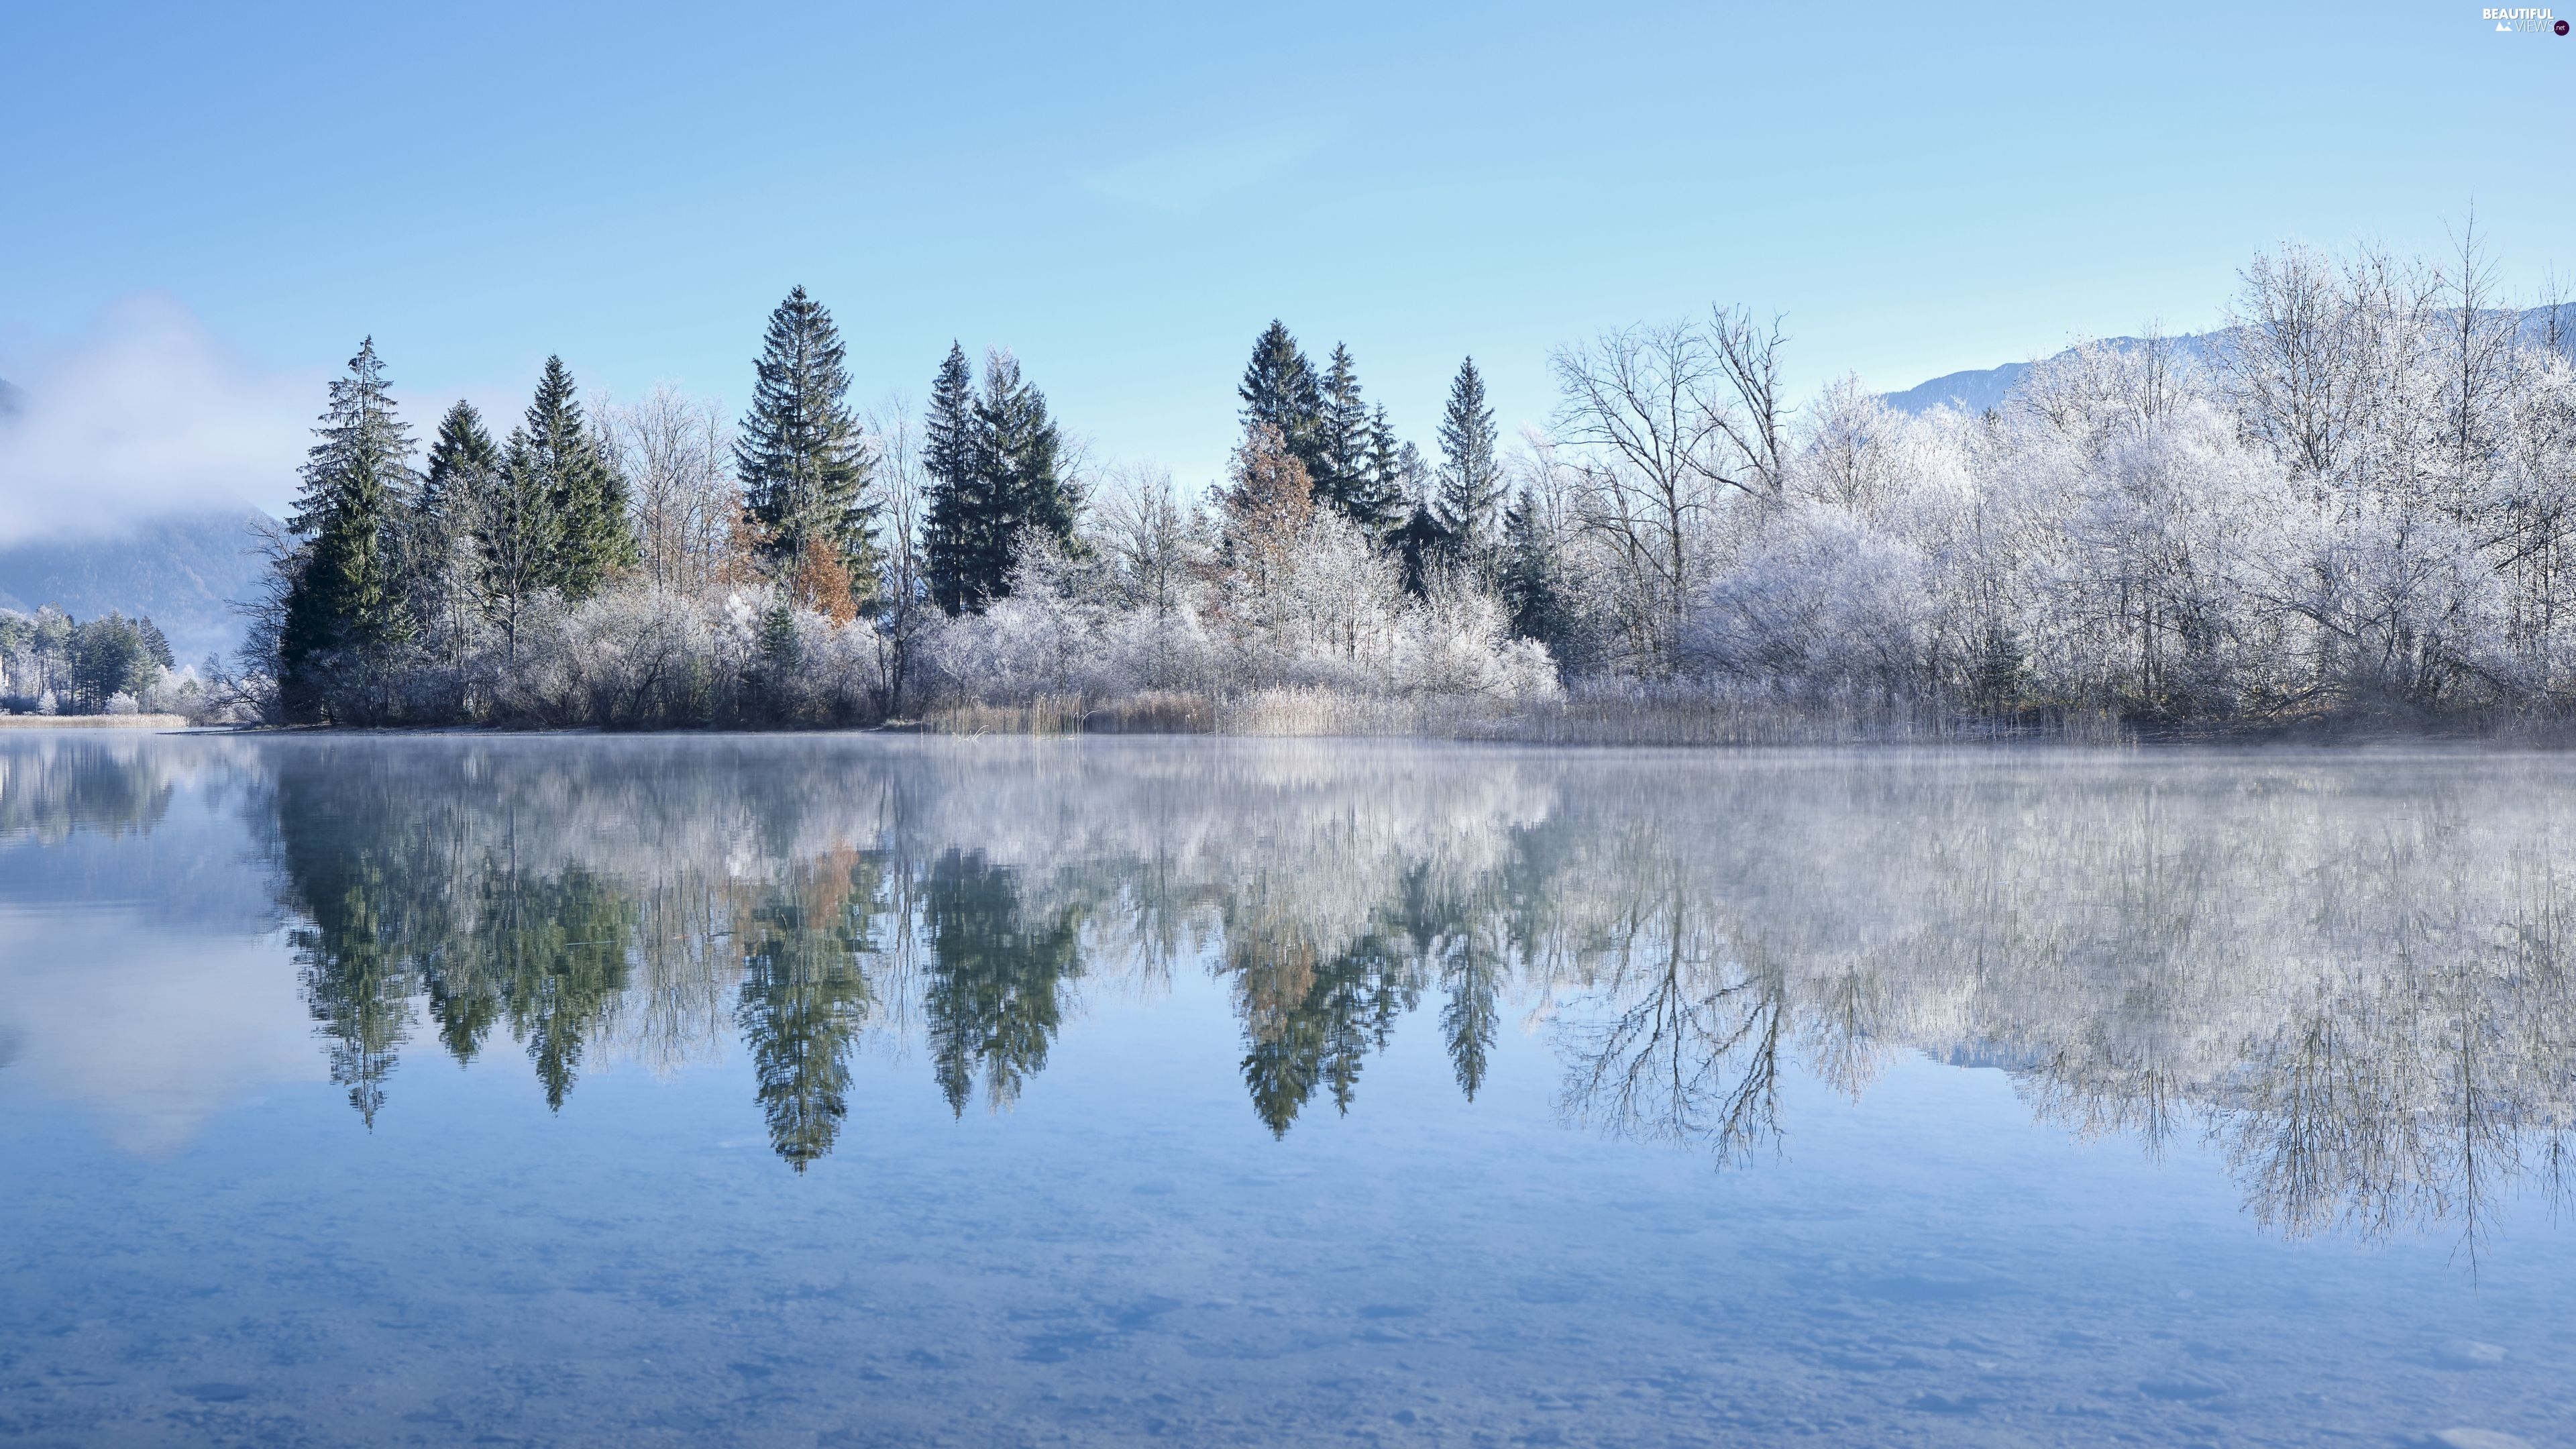 snow, trees, winter, viewes, lake, reflection, Mountains